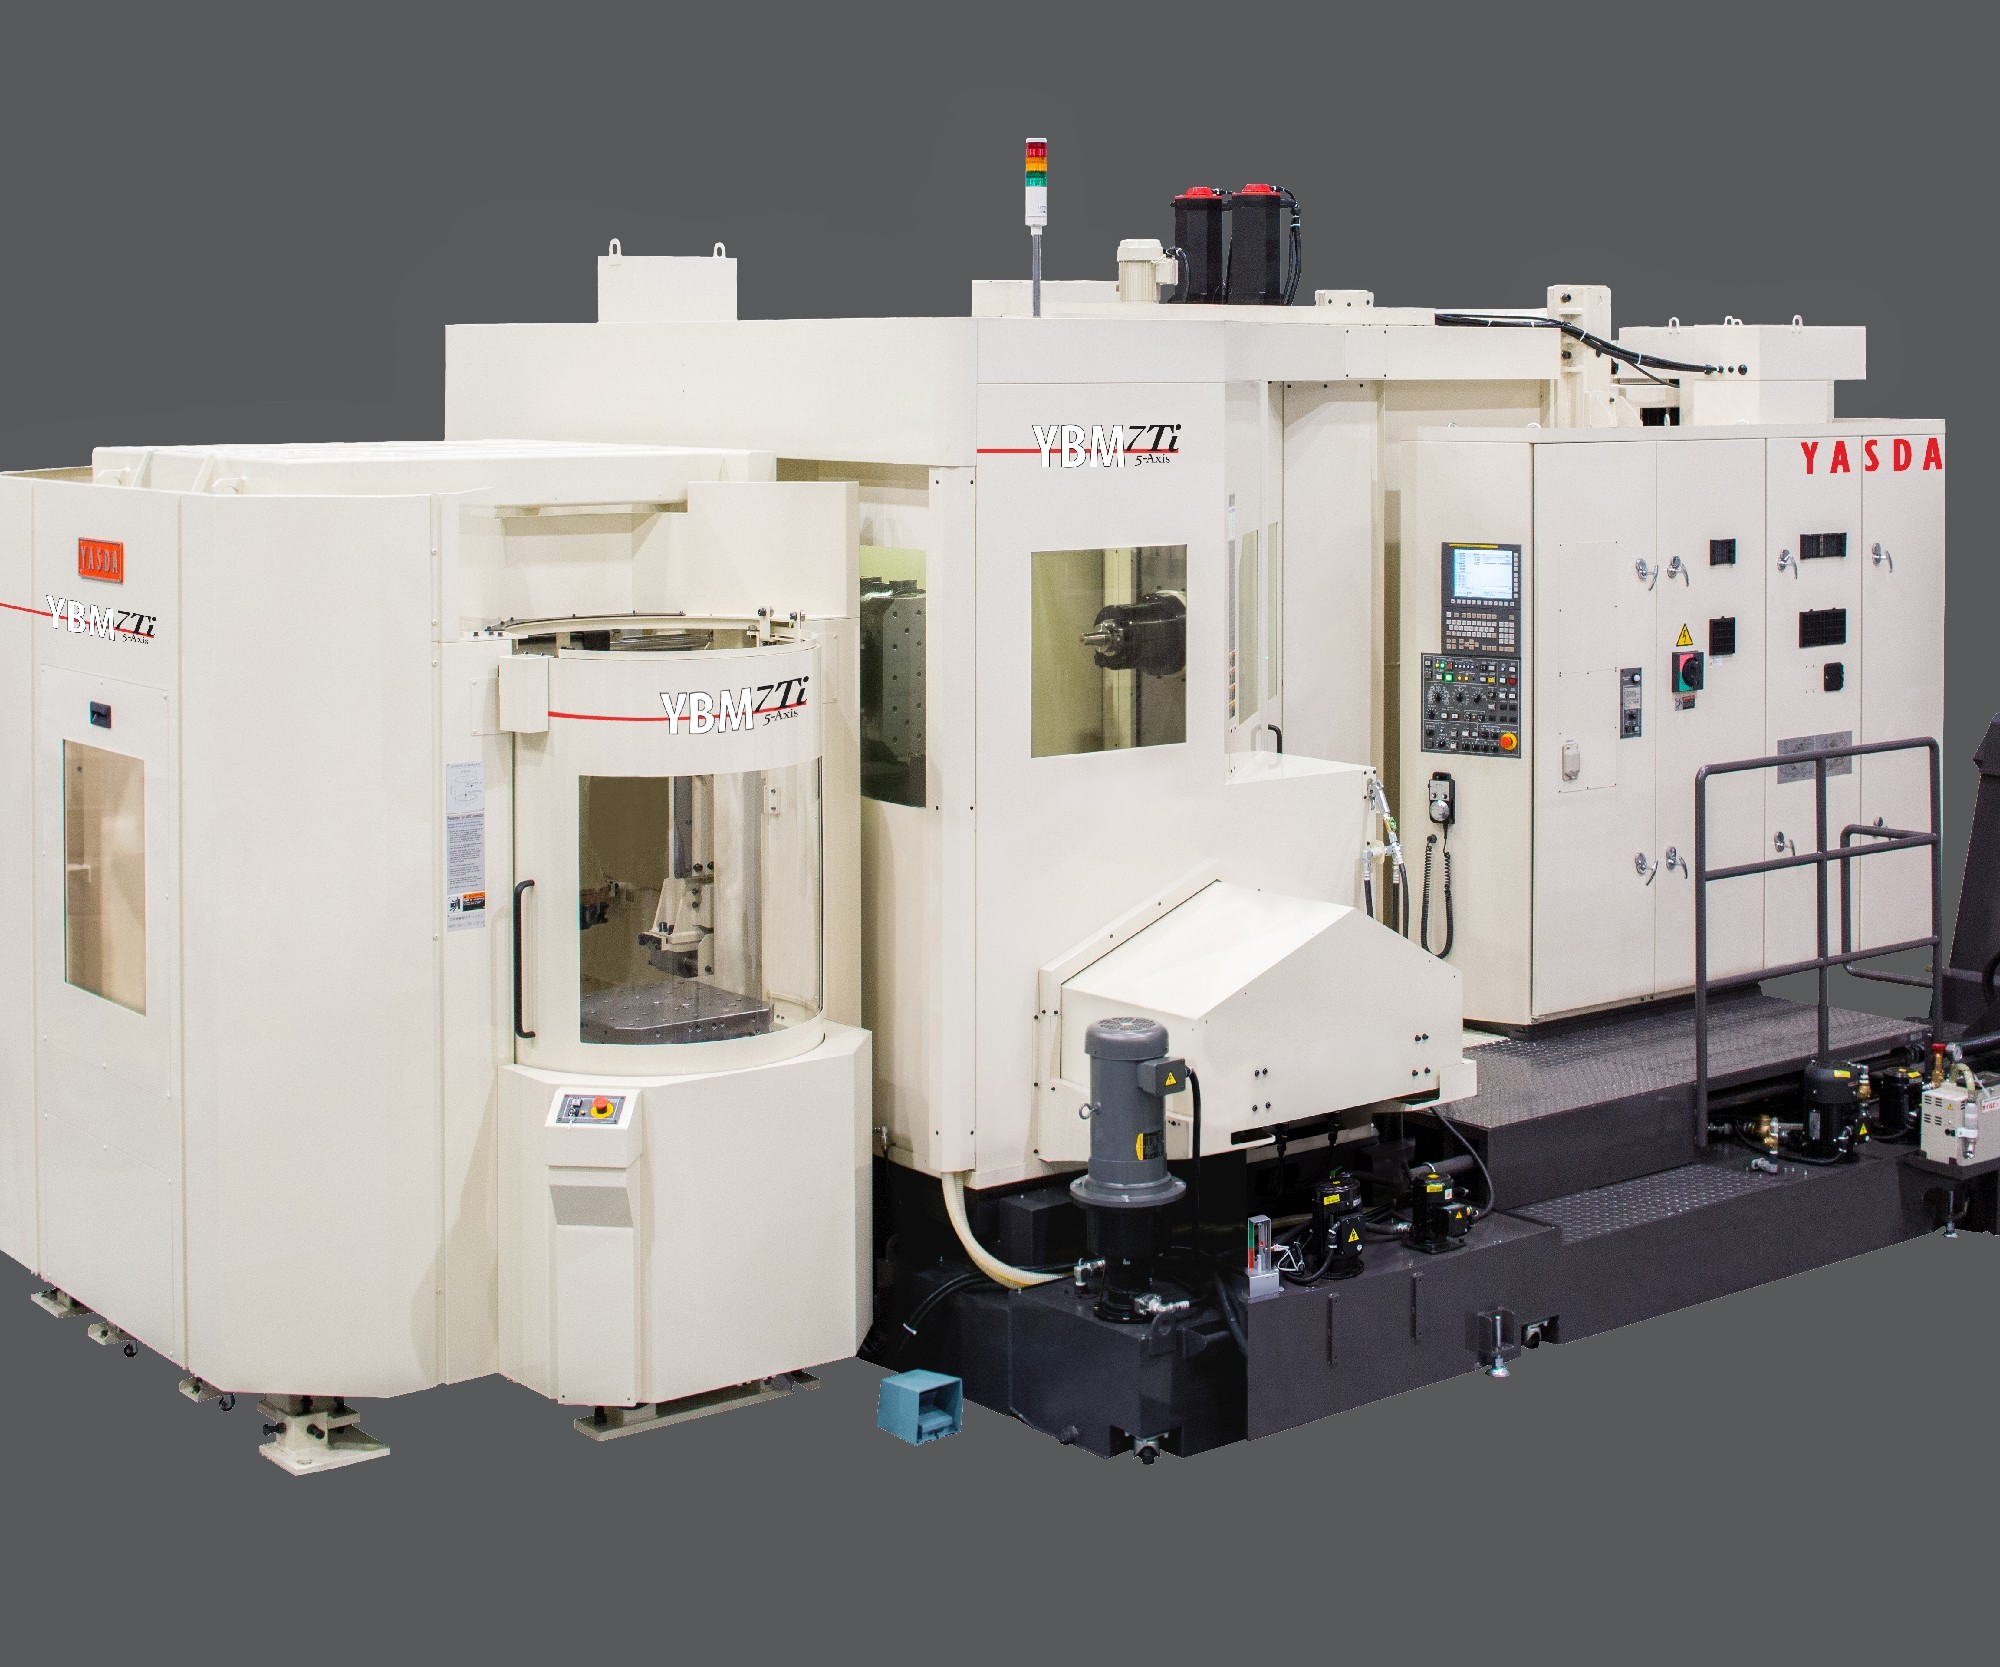 Methods Machine Tools will display Yasda's YBM 7Ti HMC at IMTS 2018.